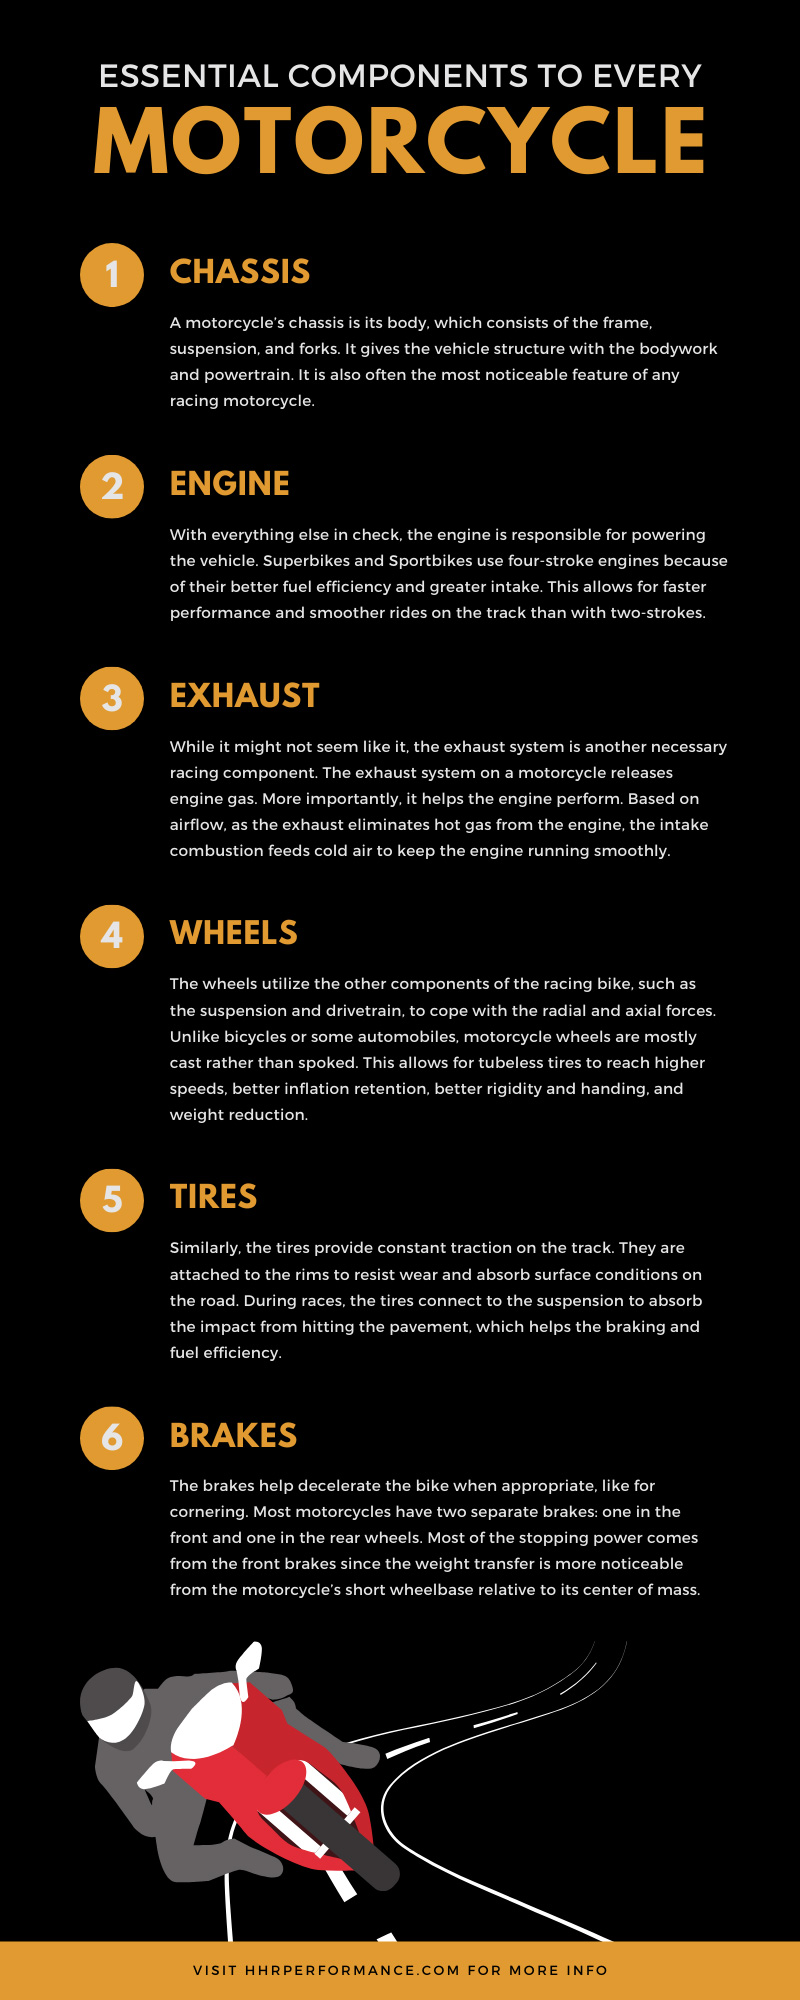 Components to Every Motorcycle